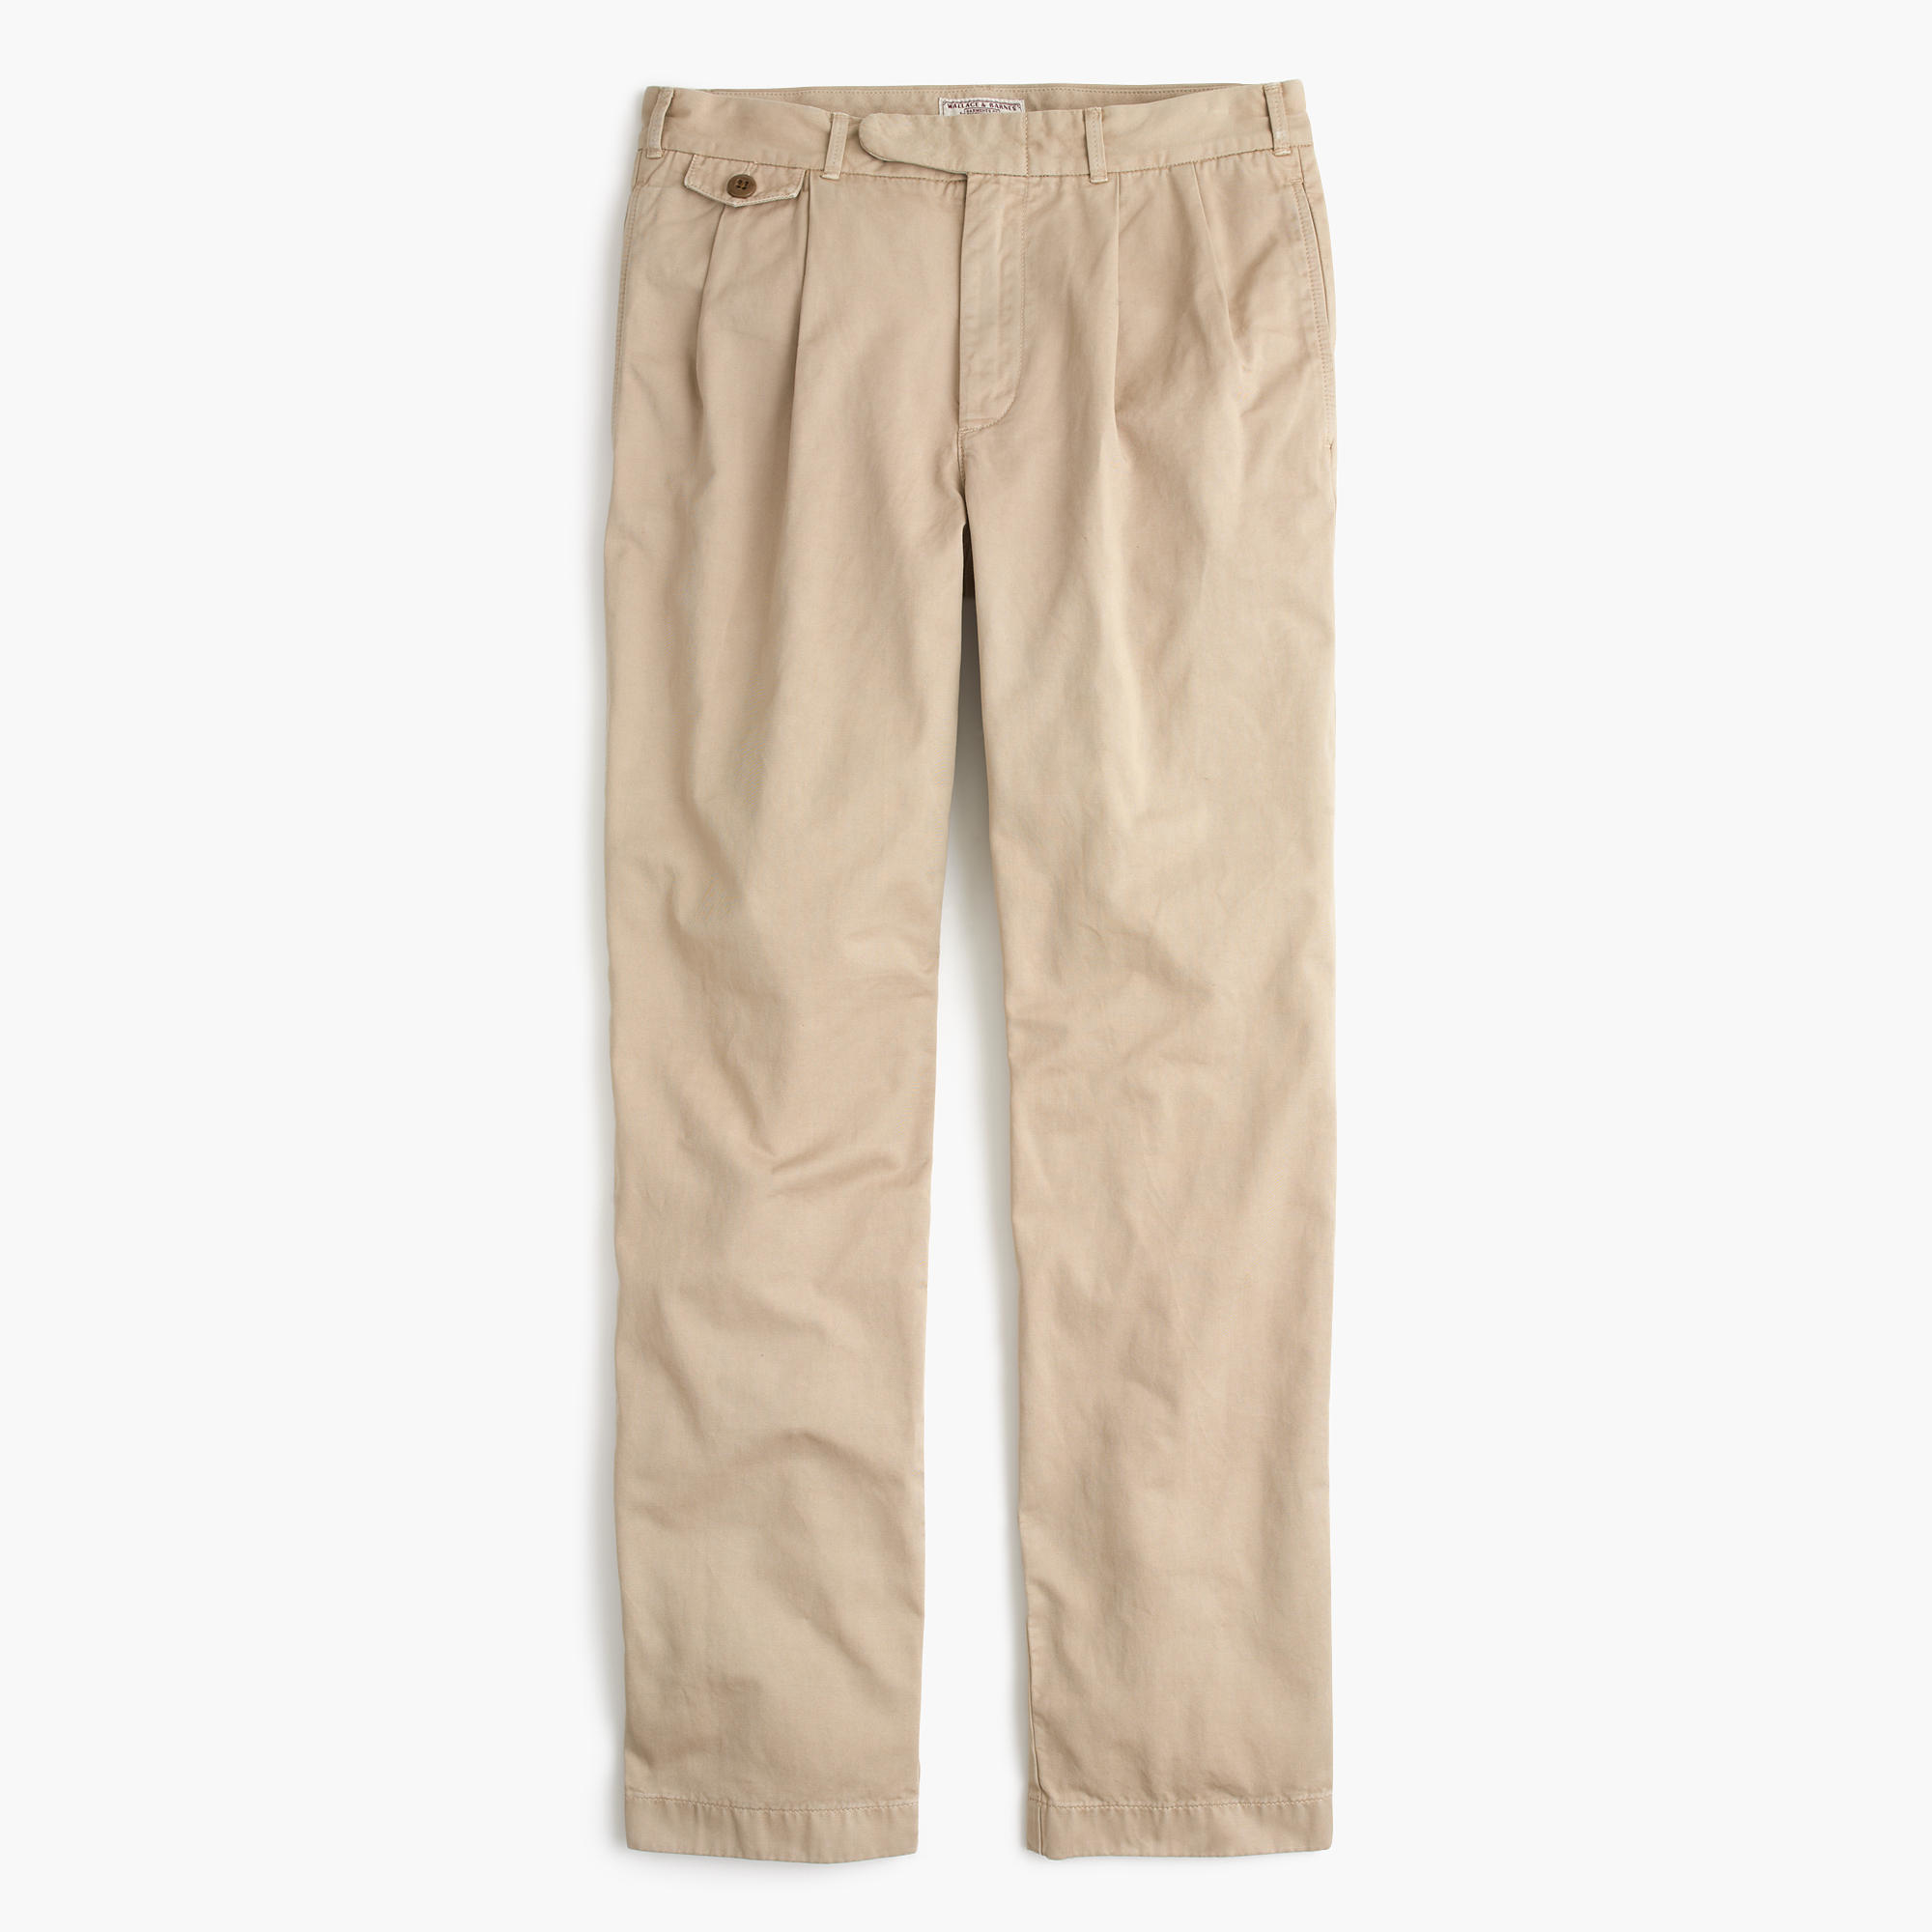 1aaf726ebc72 Lyst - J.Crew Wallace   Barnes Double-pleated Relaxed-fit Military ...